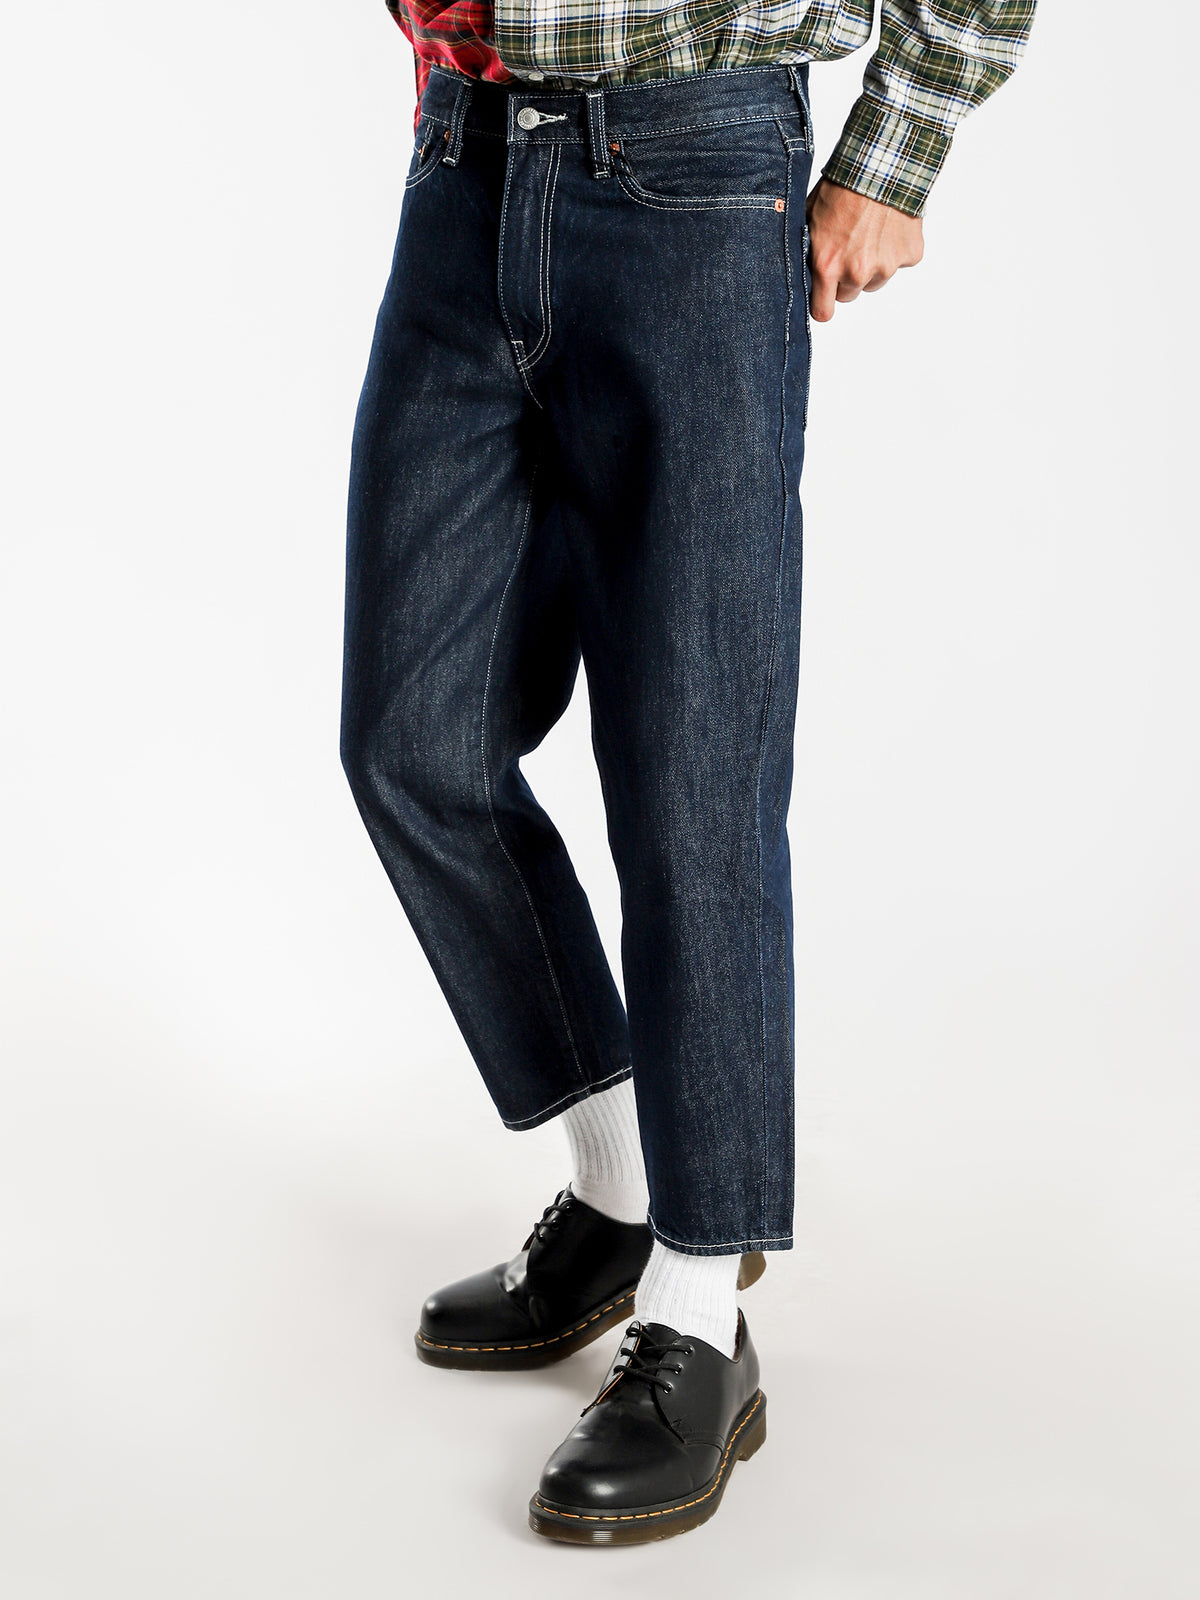 562 Loose Taper Utility Jeans in Work Bench Blue Denim